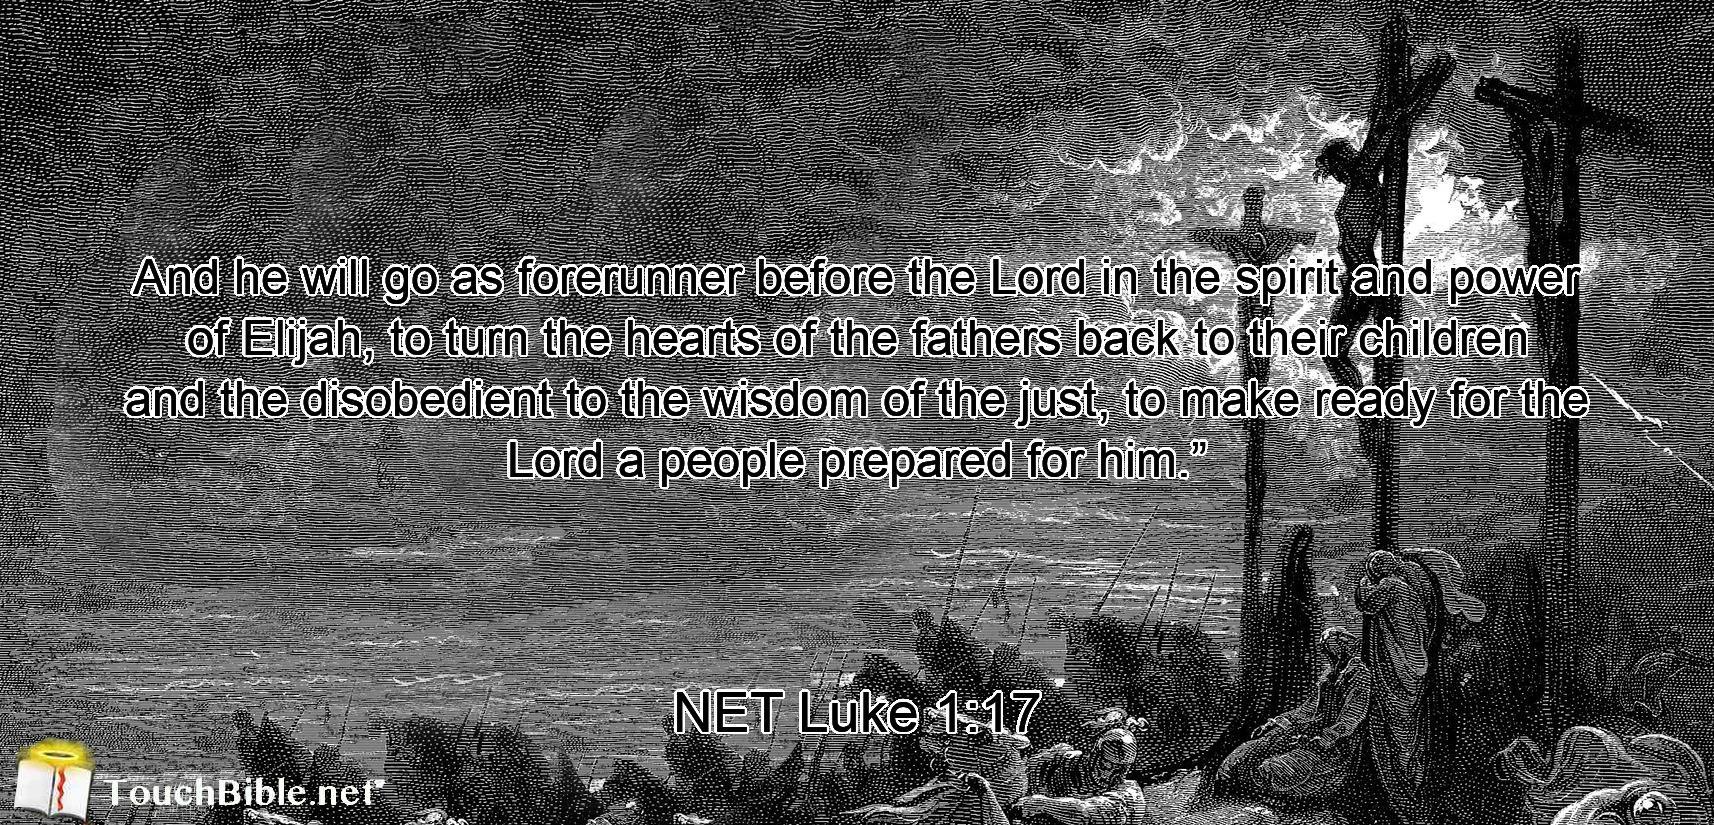 """And he will go as forerunner before the Lord  in the spirit and power of Elijah, to turn the hearts of the fathers back to their children and the disobedient to the wisdom of the just,  to make ready for the Lord a people prepared for him."""""""